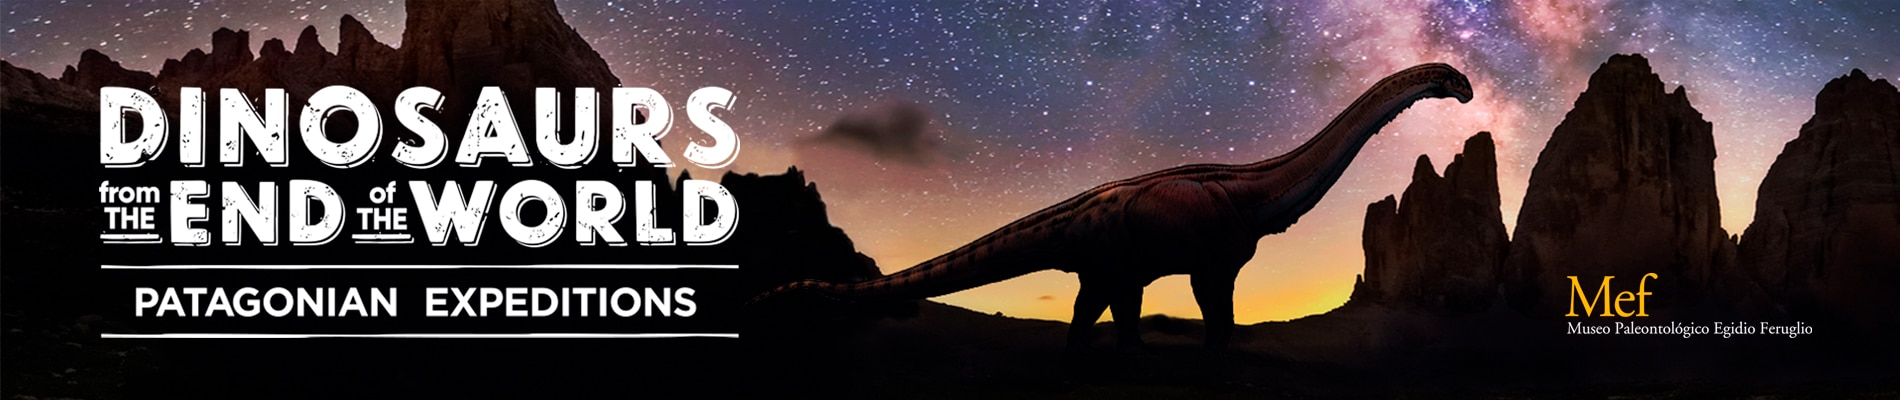 Dinosaurs from the end of the world